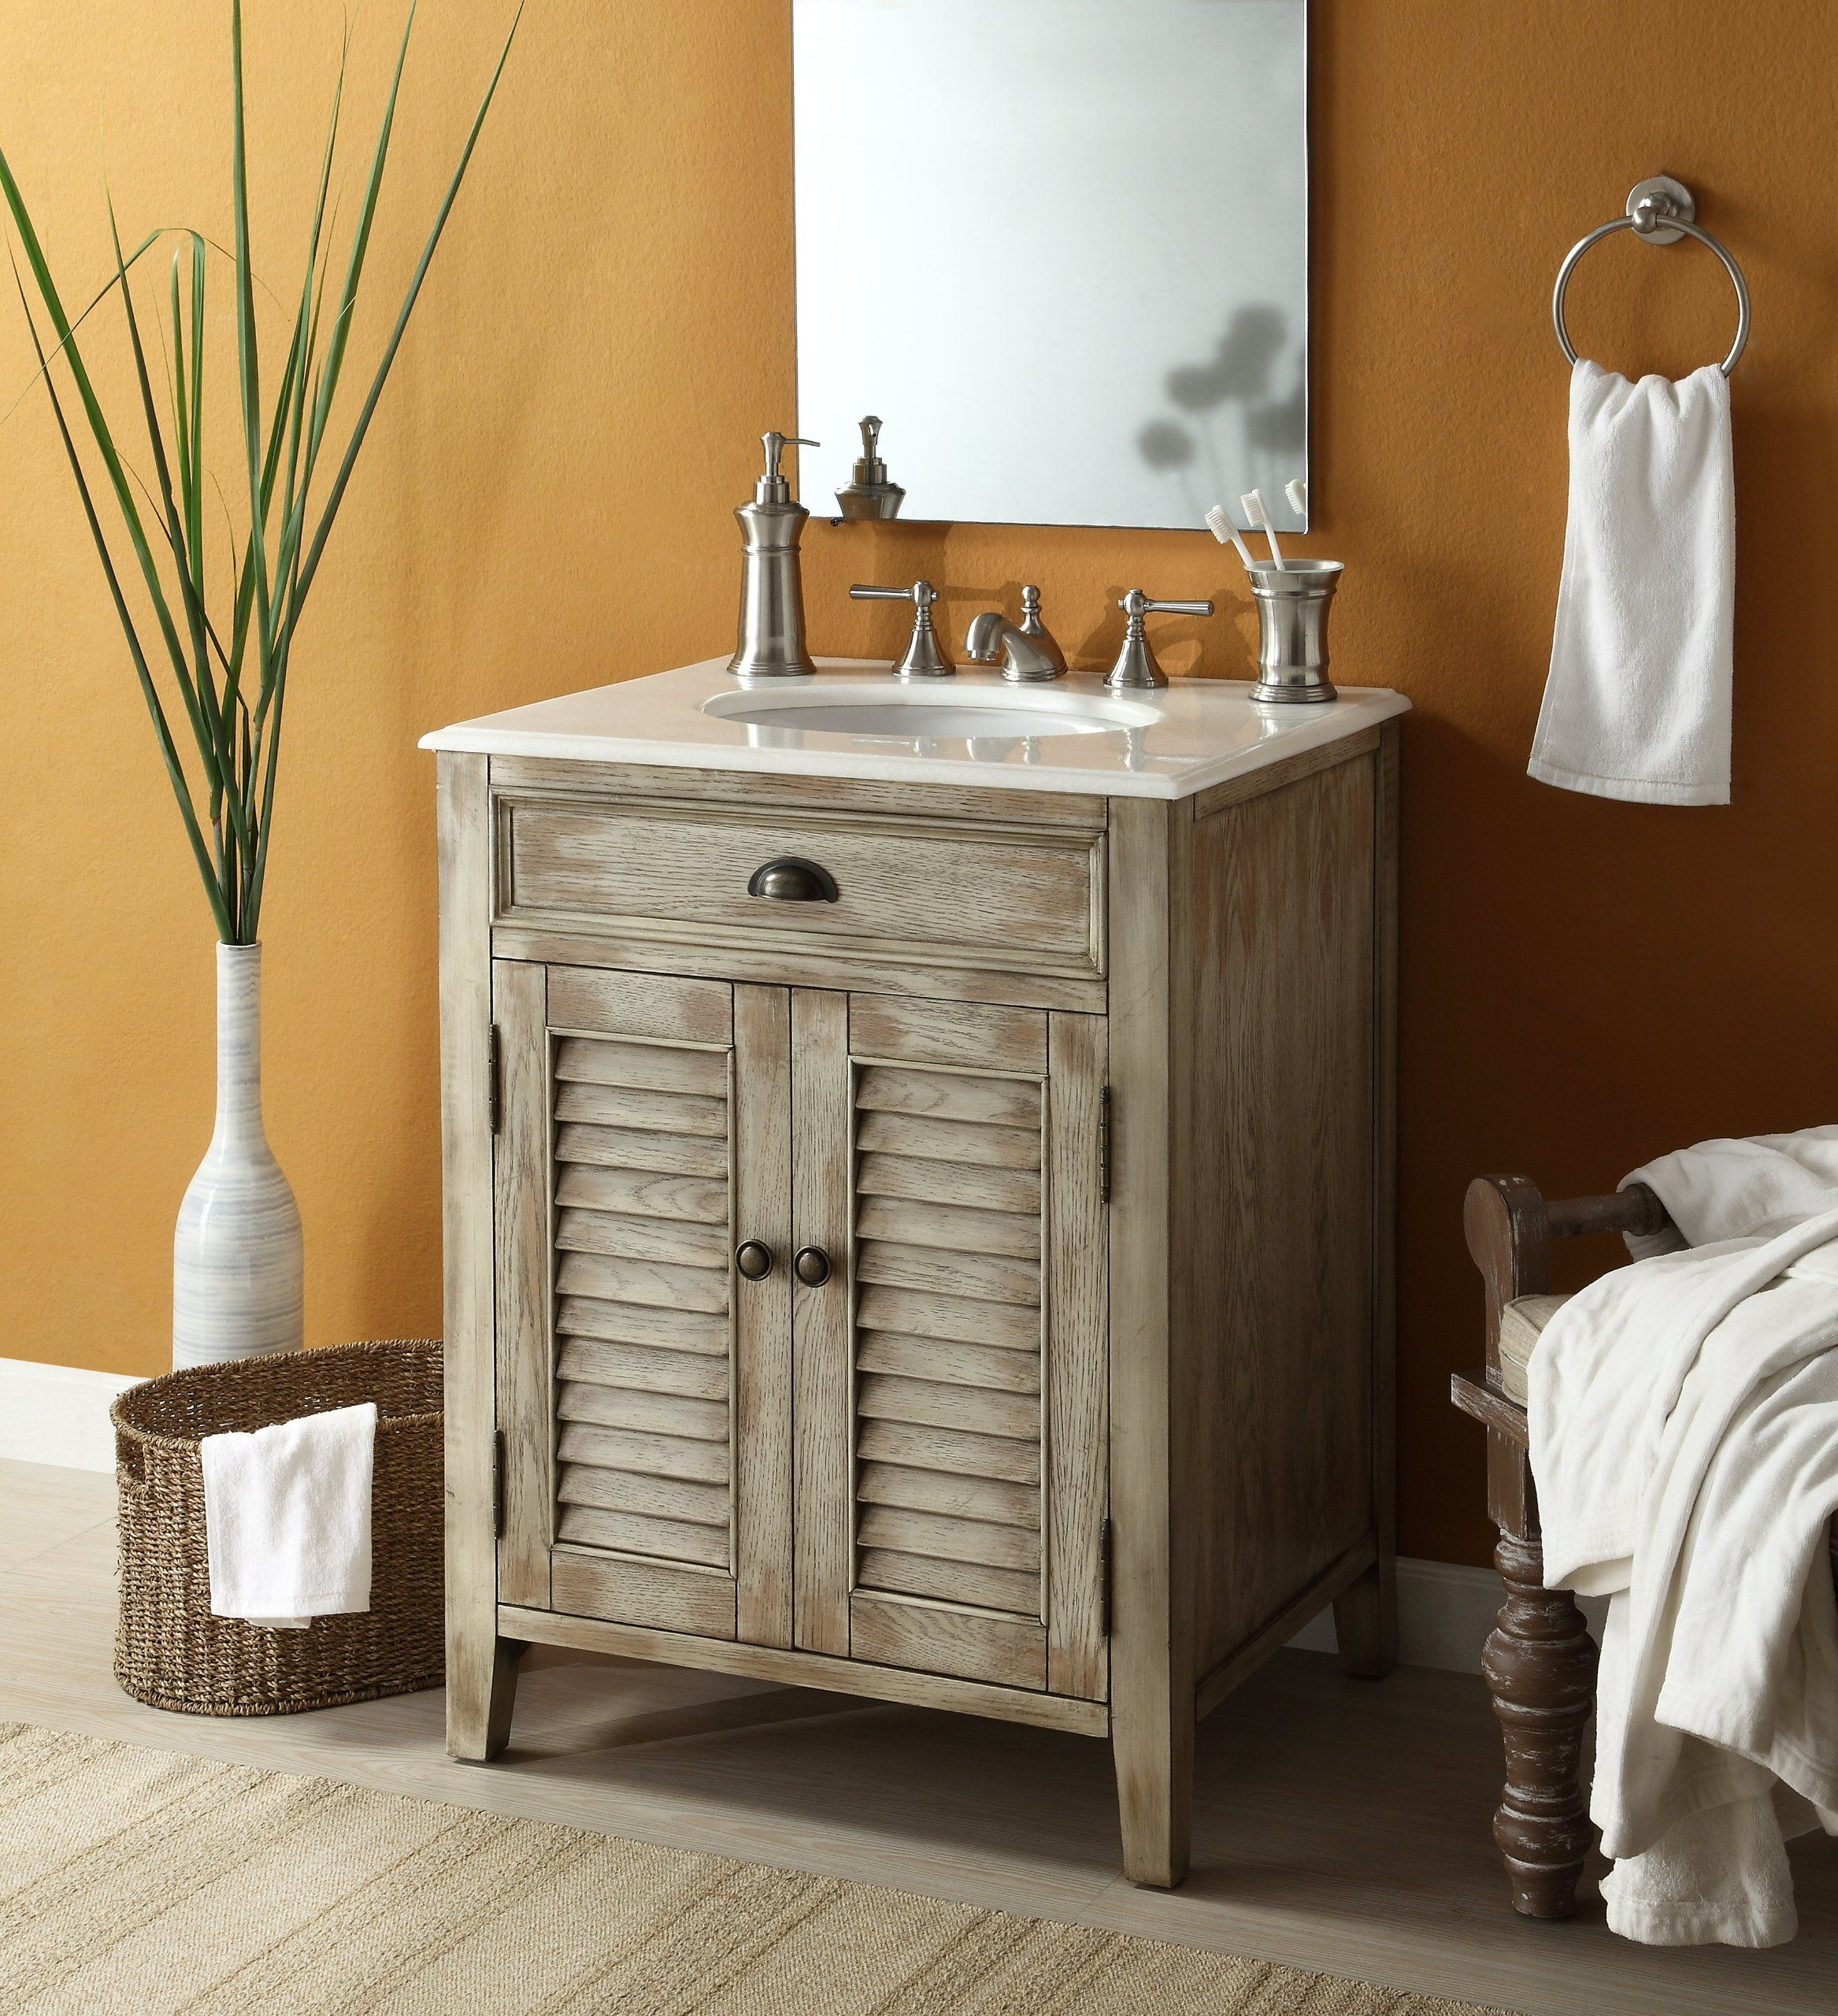 26 inch bathroom vanity. 26\ 26 Inch Bathroom Vanity I